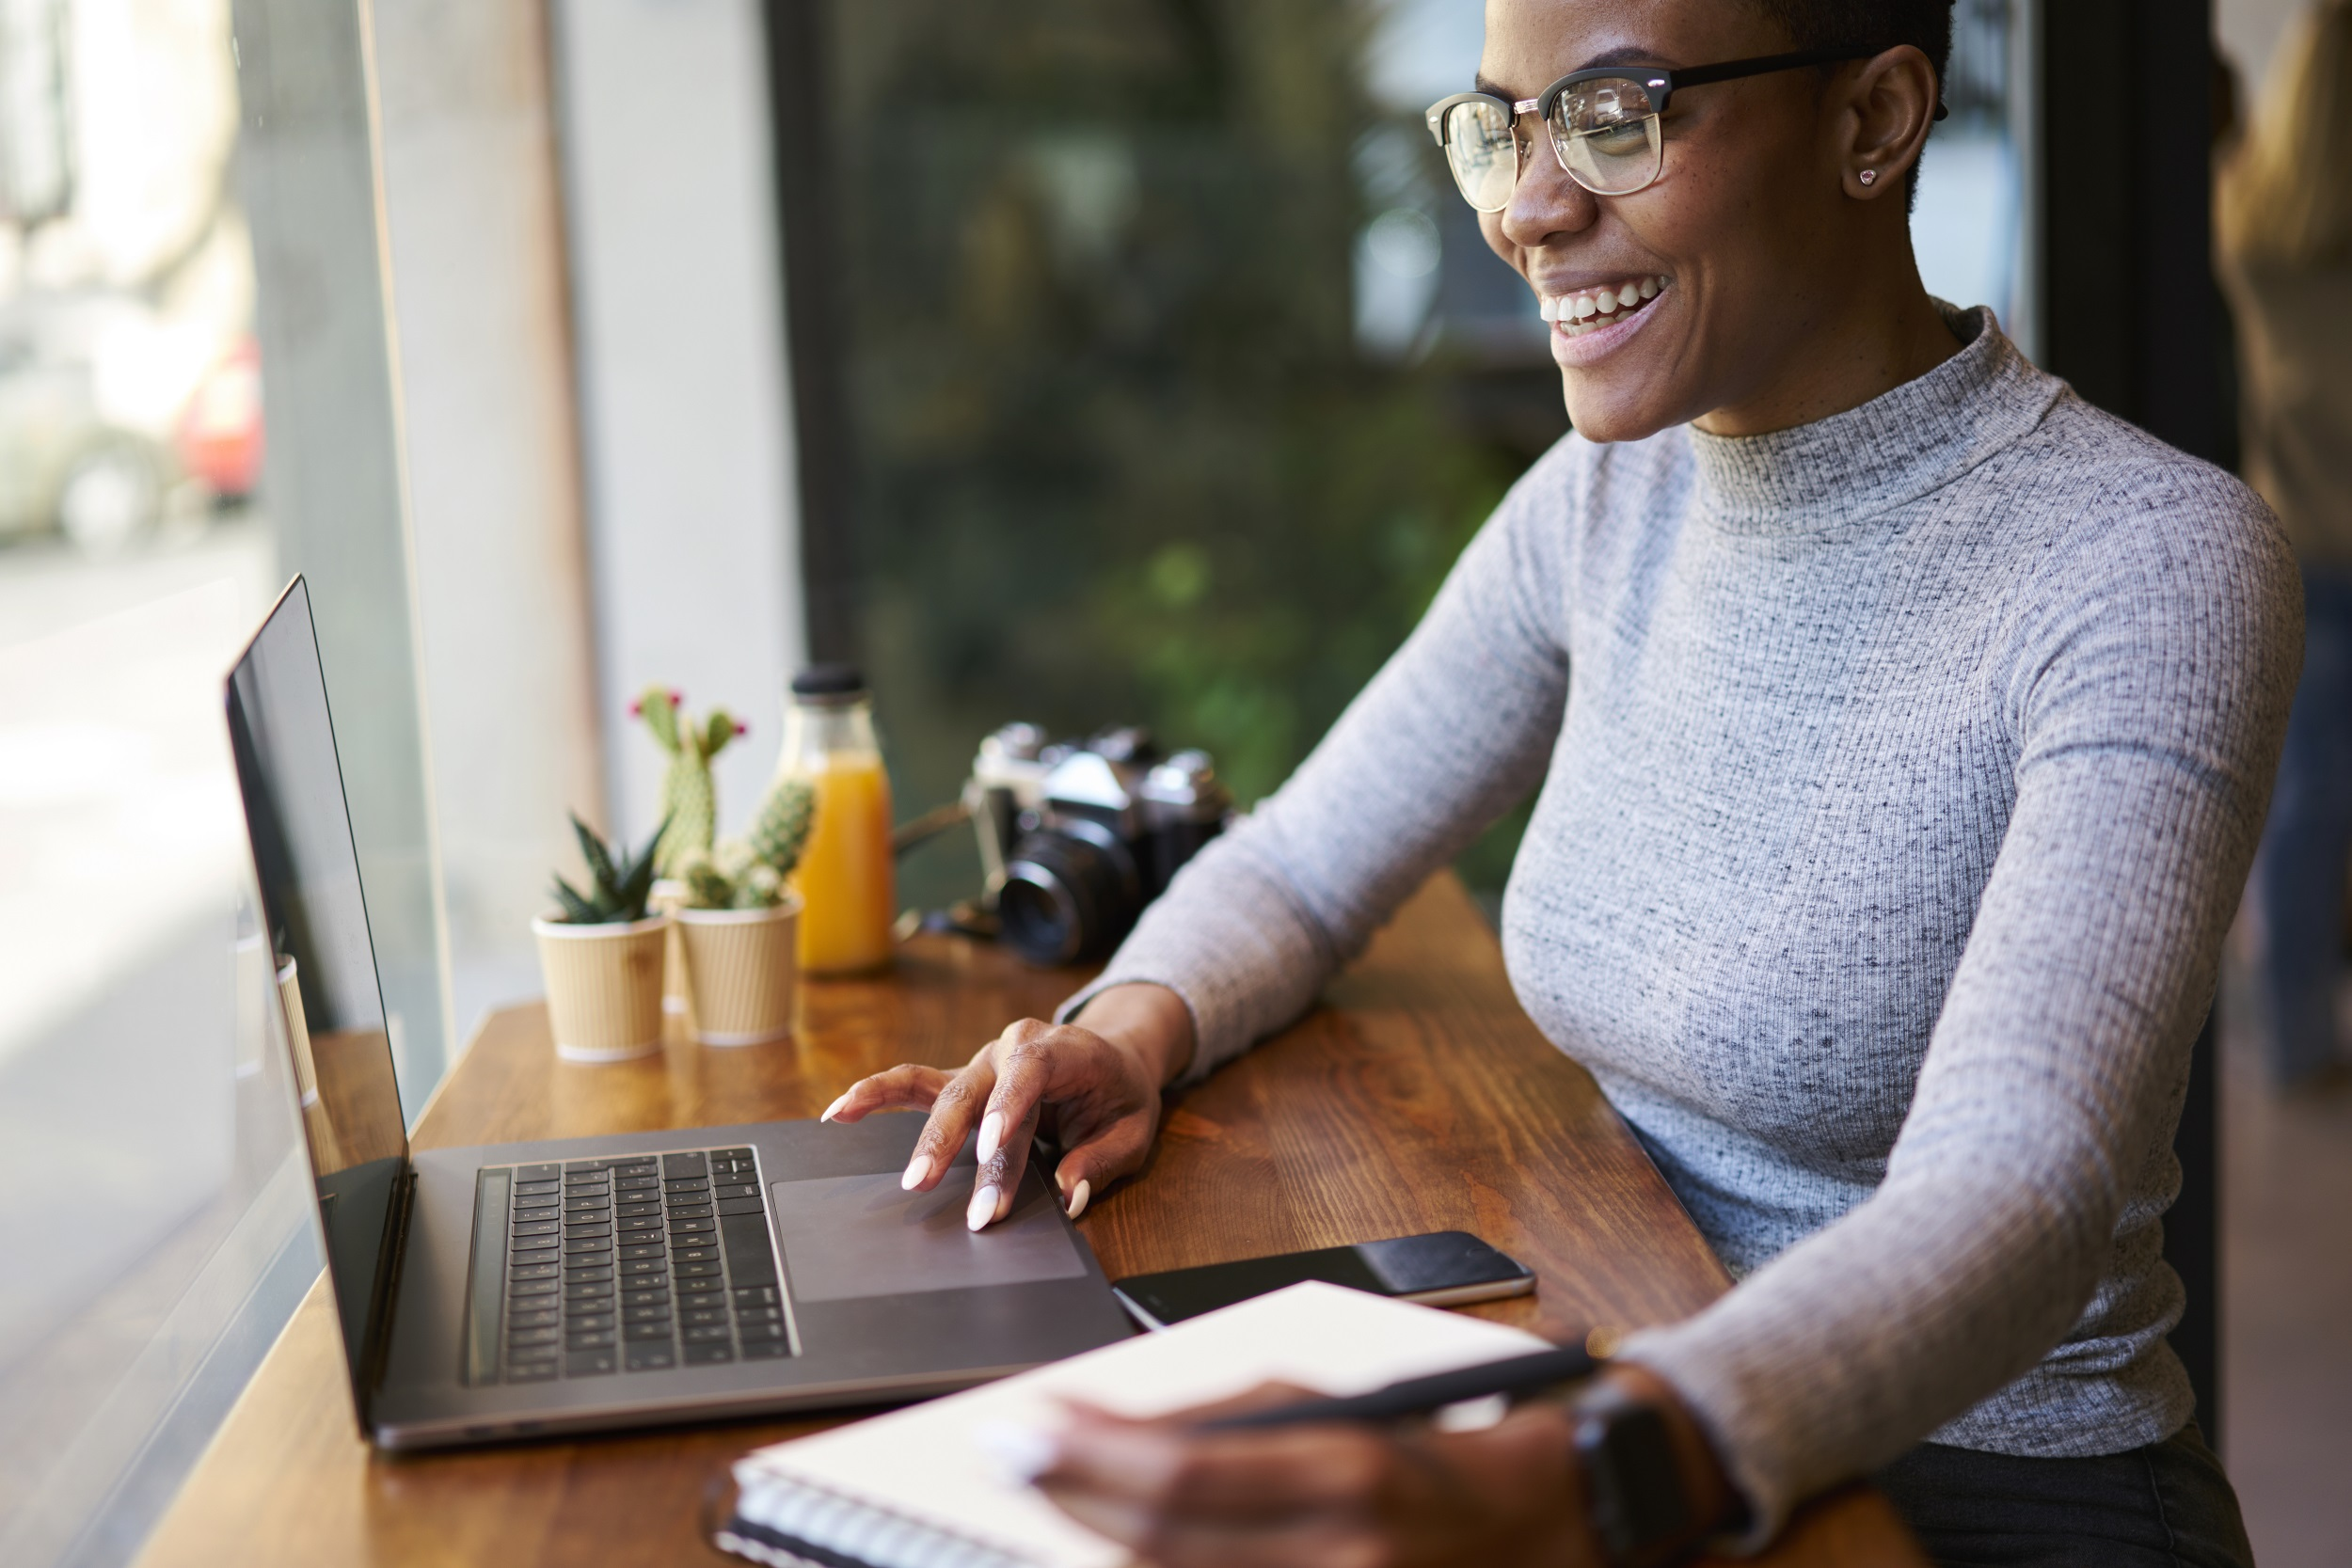 Businesswoman smiling at laptop screen whilst working remotely